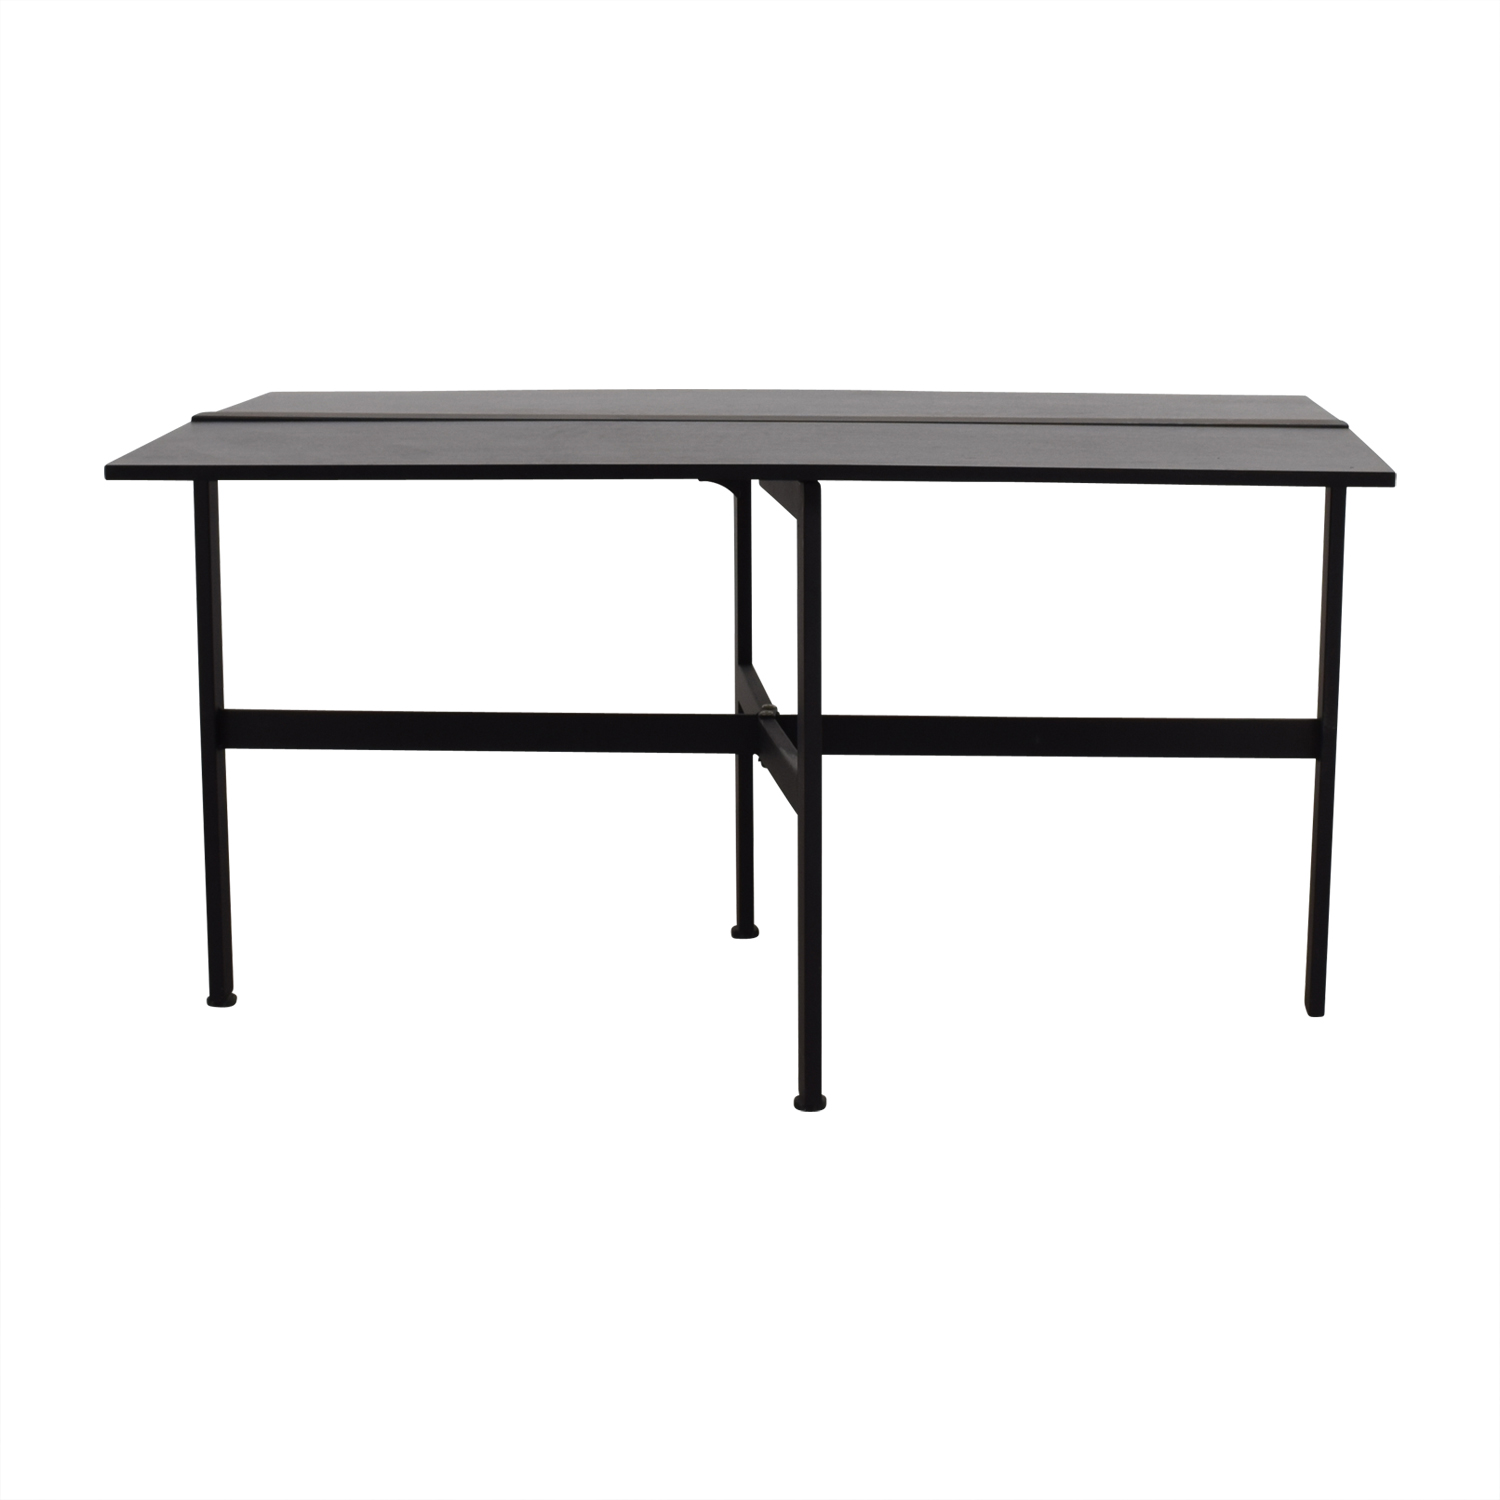 shop Matrix Imports Furniture Matrix Imports Furniture Tokyo Folding Dining Table online